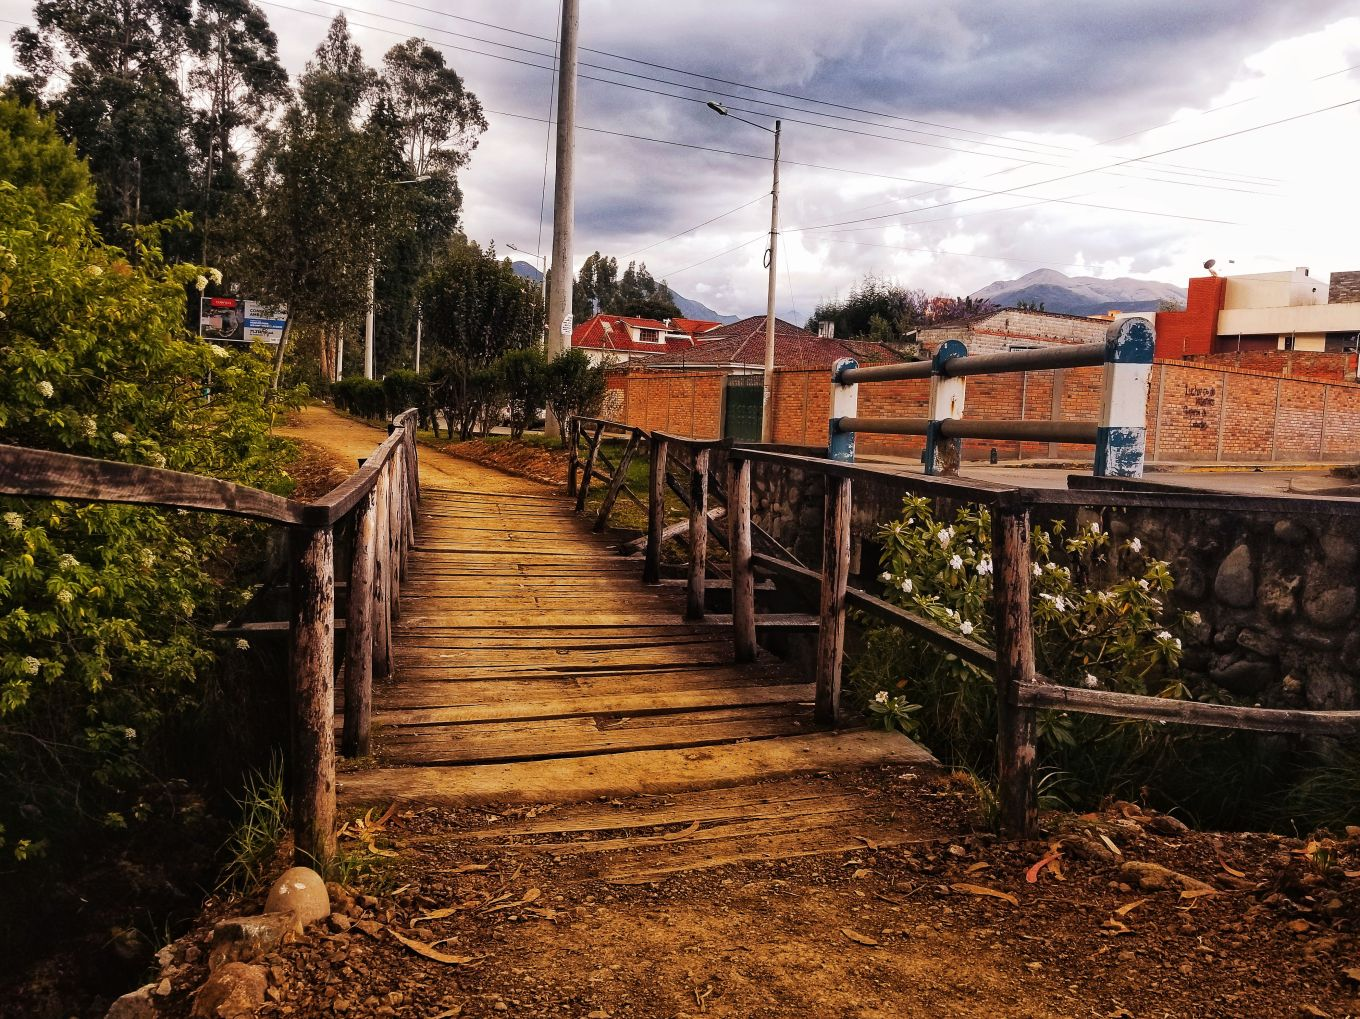 A Riverwalk bridge in Cuenca, Ecuador